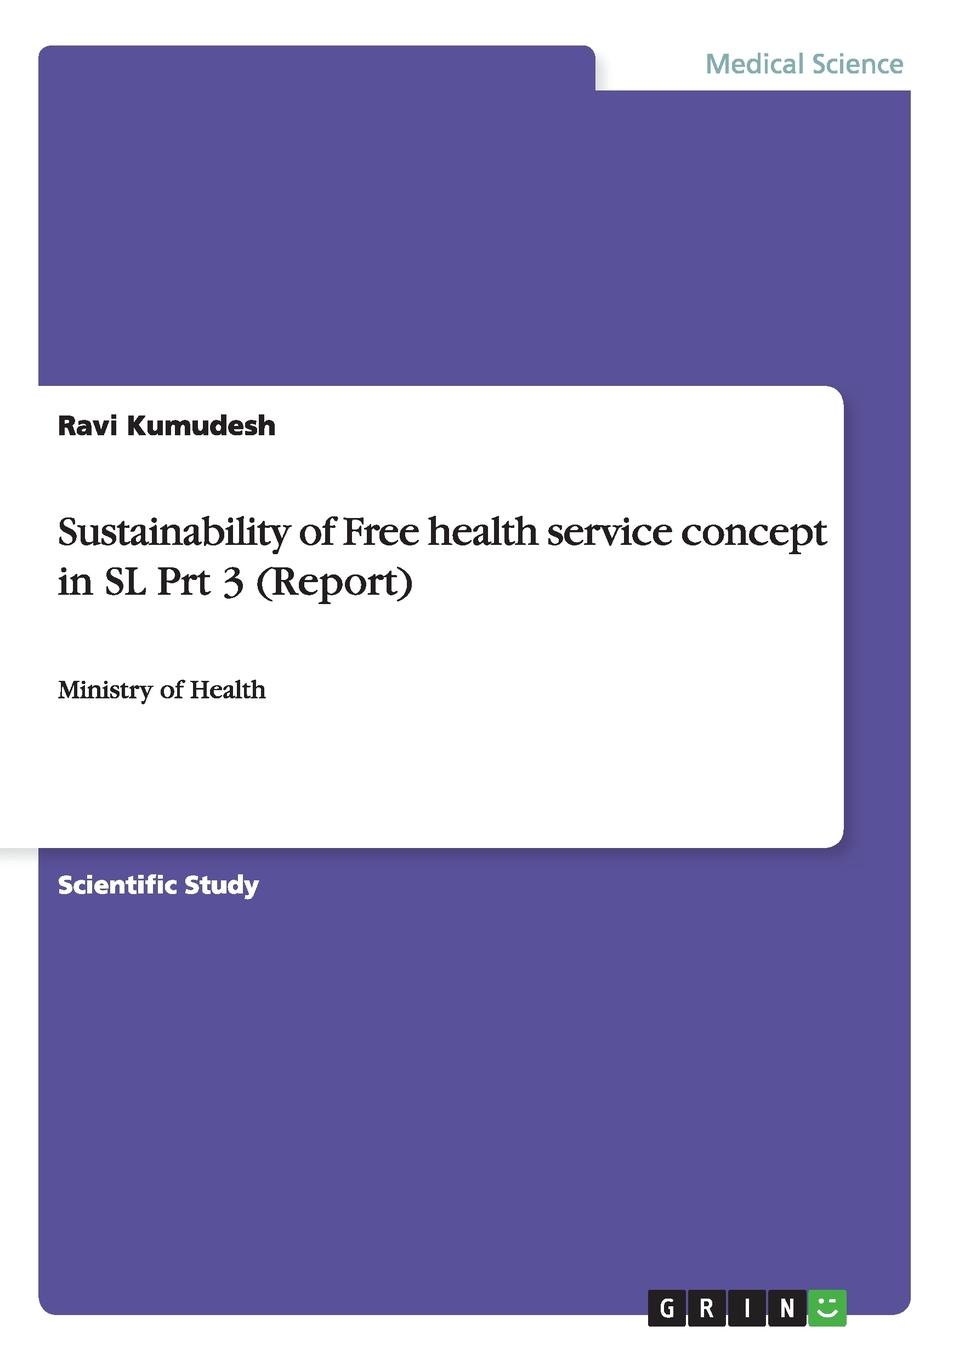 Ravi Kumudesh Sustainability of Free health service concept in SL Prt 3 (Report) impact of water quality on community health in south west england